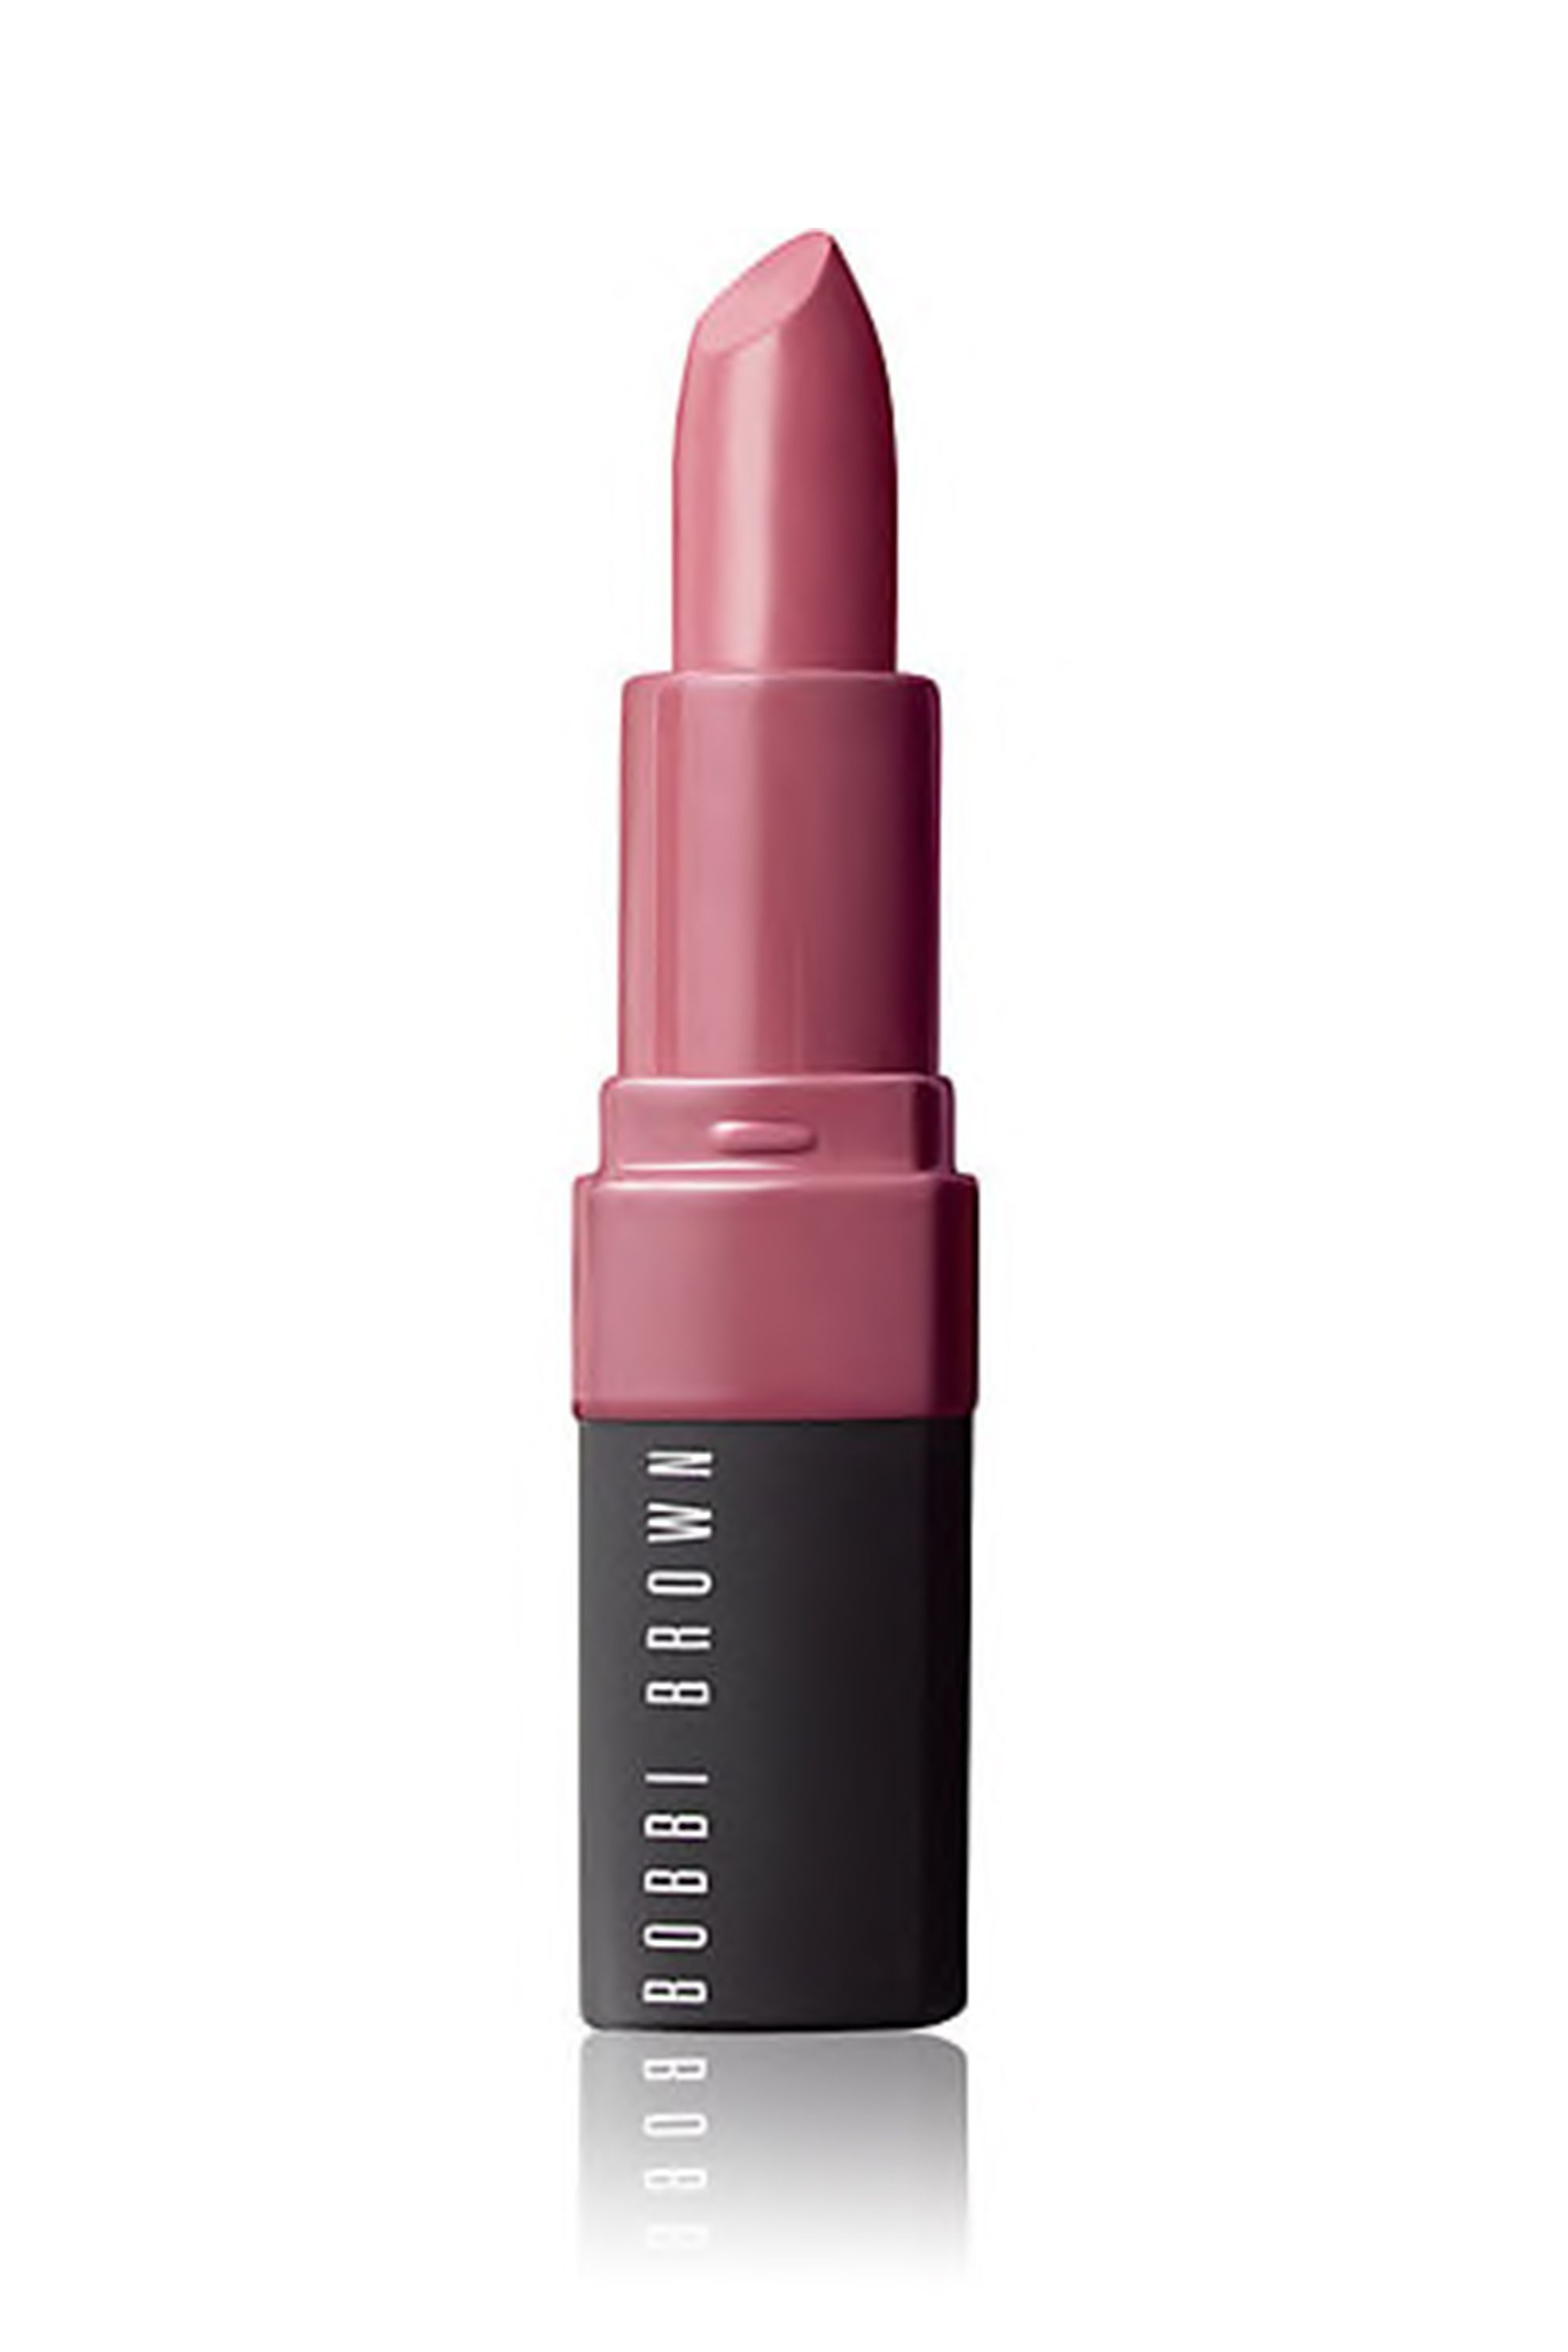 """<p>This sweet lavender color features a faded finish that suggests you just made out. Love!</p><p><em data-redactor-tag=""""em"""" data-verified=""""redactor"""">$29, <a href=""""http://www.barneys.com/product/bobbi-brown-crushed-lip-color-505336558.html"""" data-tracking-id=""""recirc-text-link"""">barneys.com</a></em></p>"""